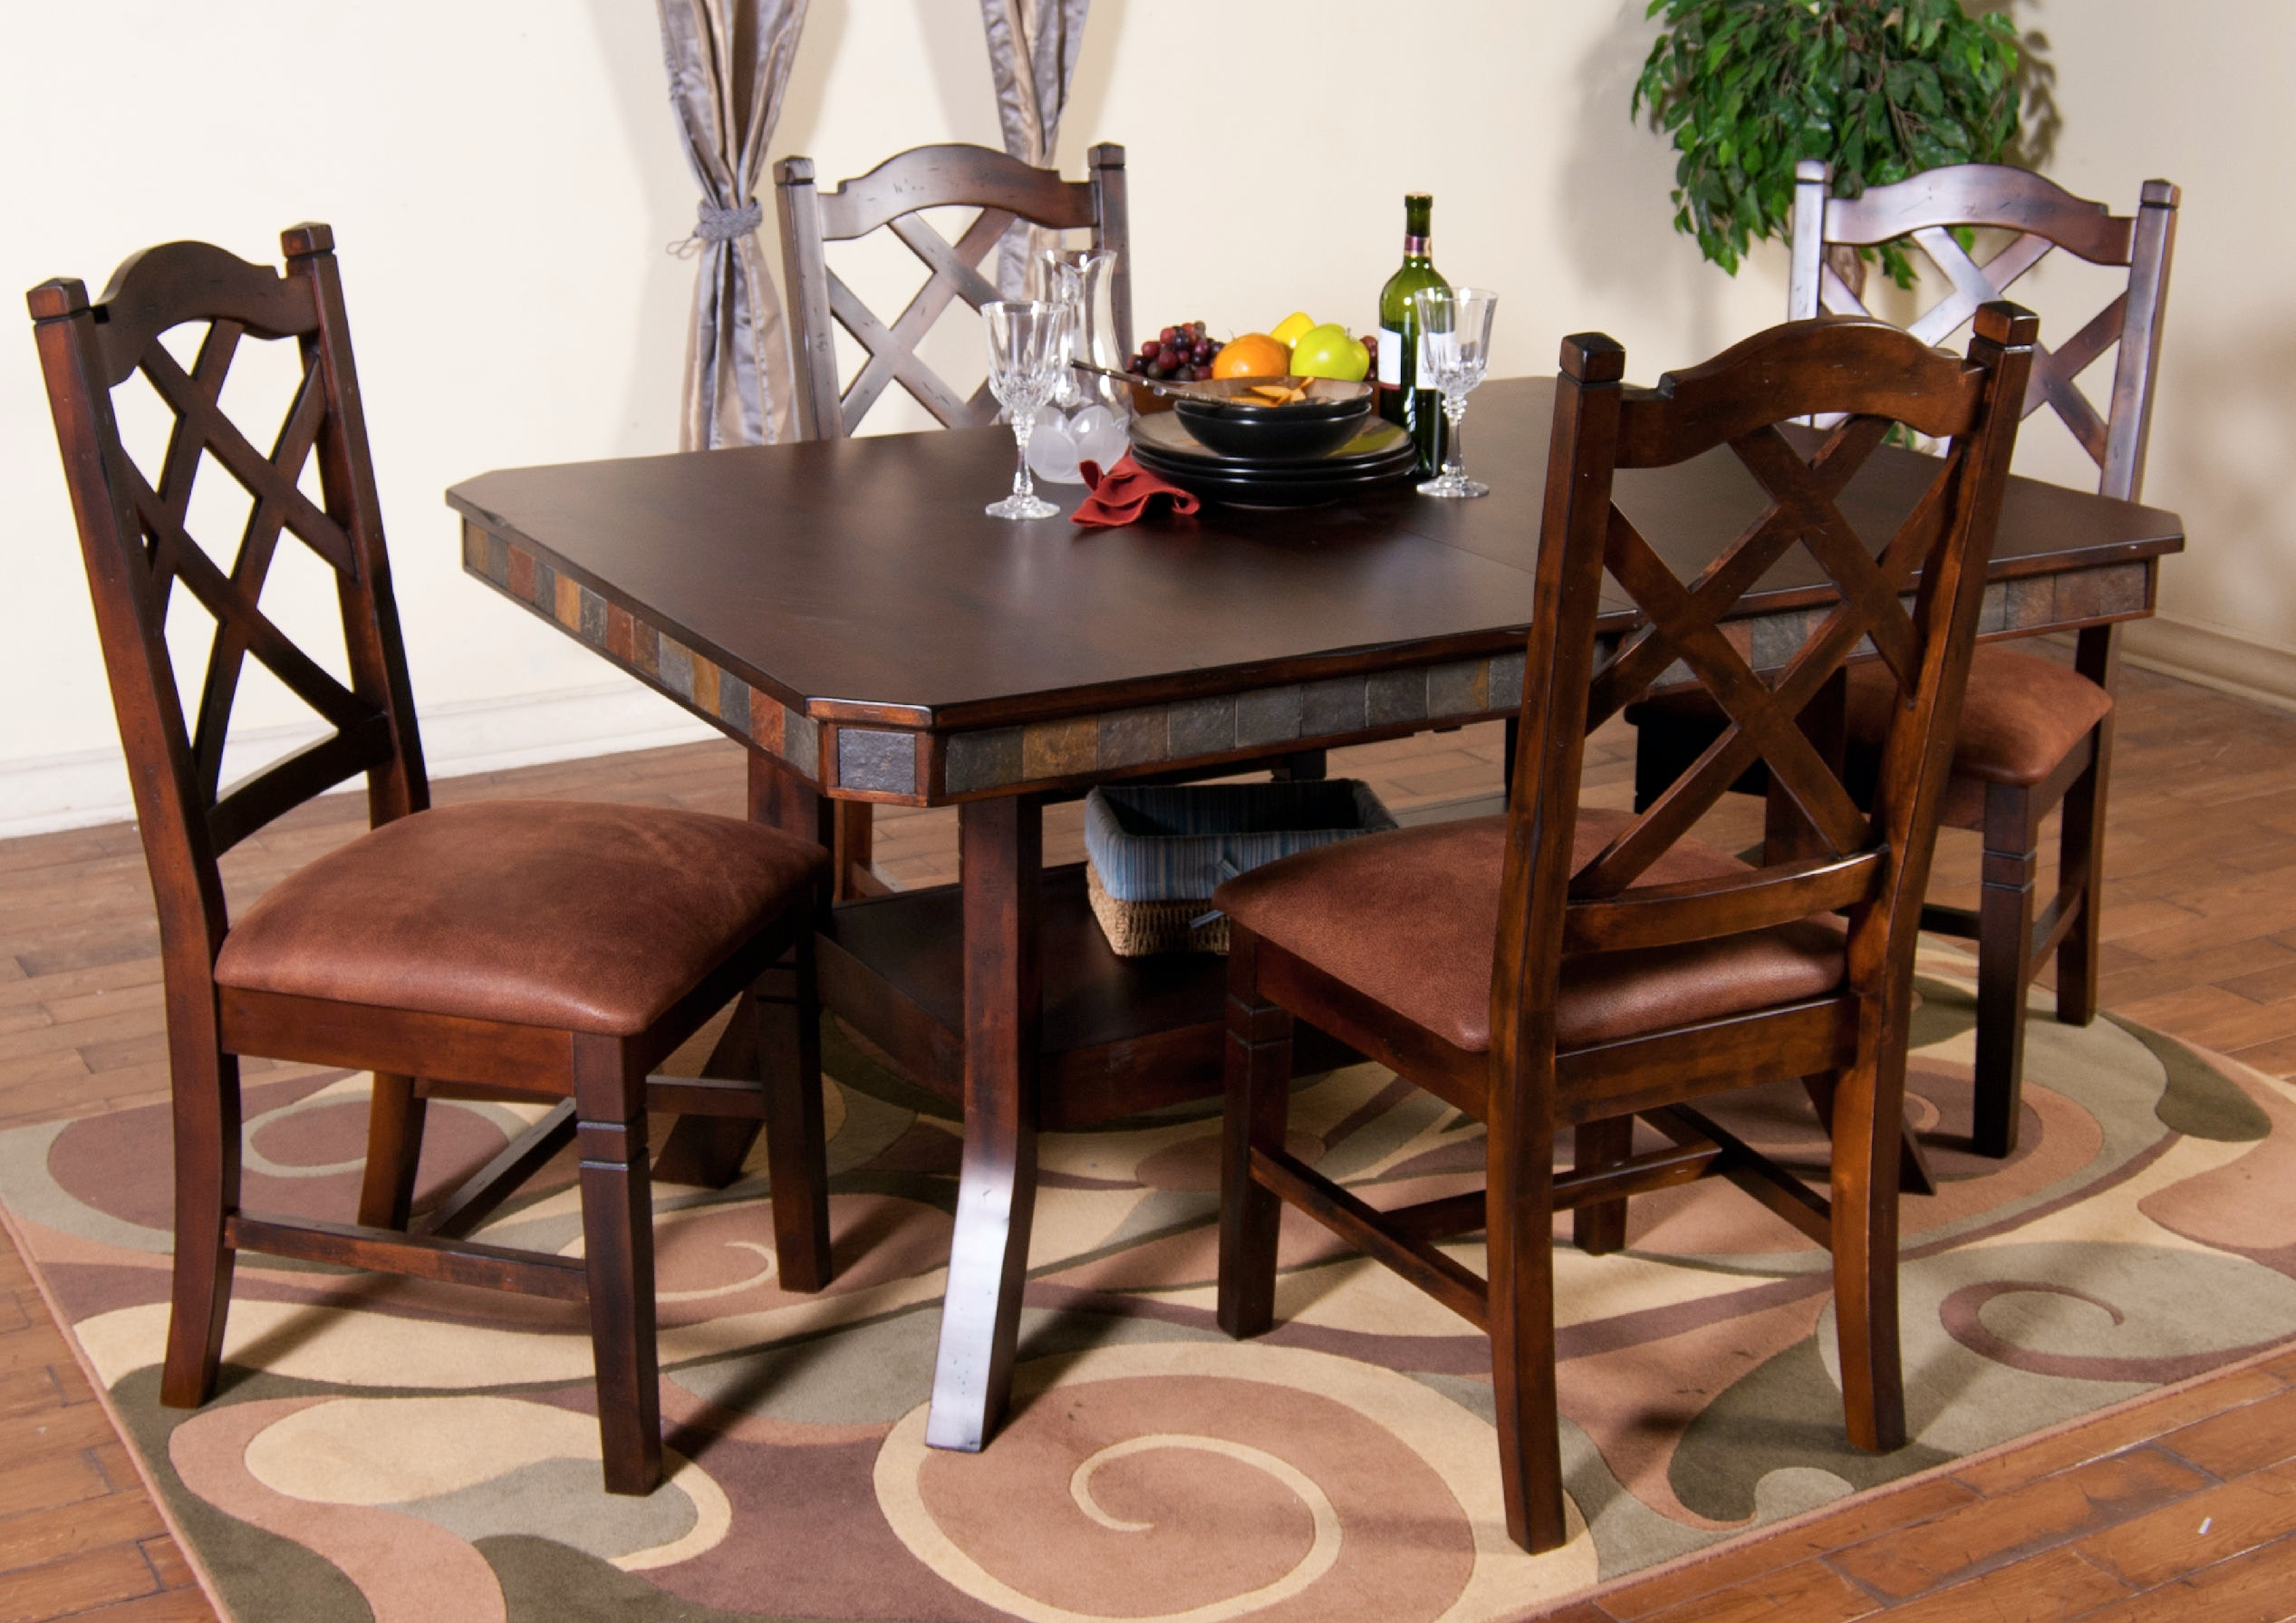 Sunny Designs Santa Fe Adj. Height Dining Table With Dbl Btfly Leaf 1151DC